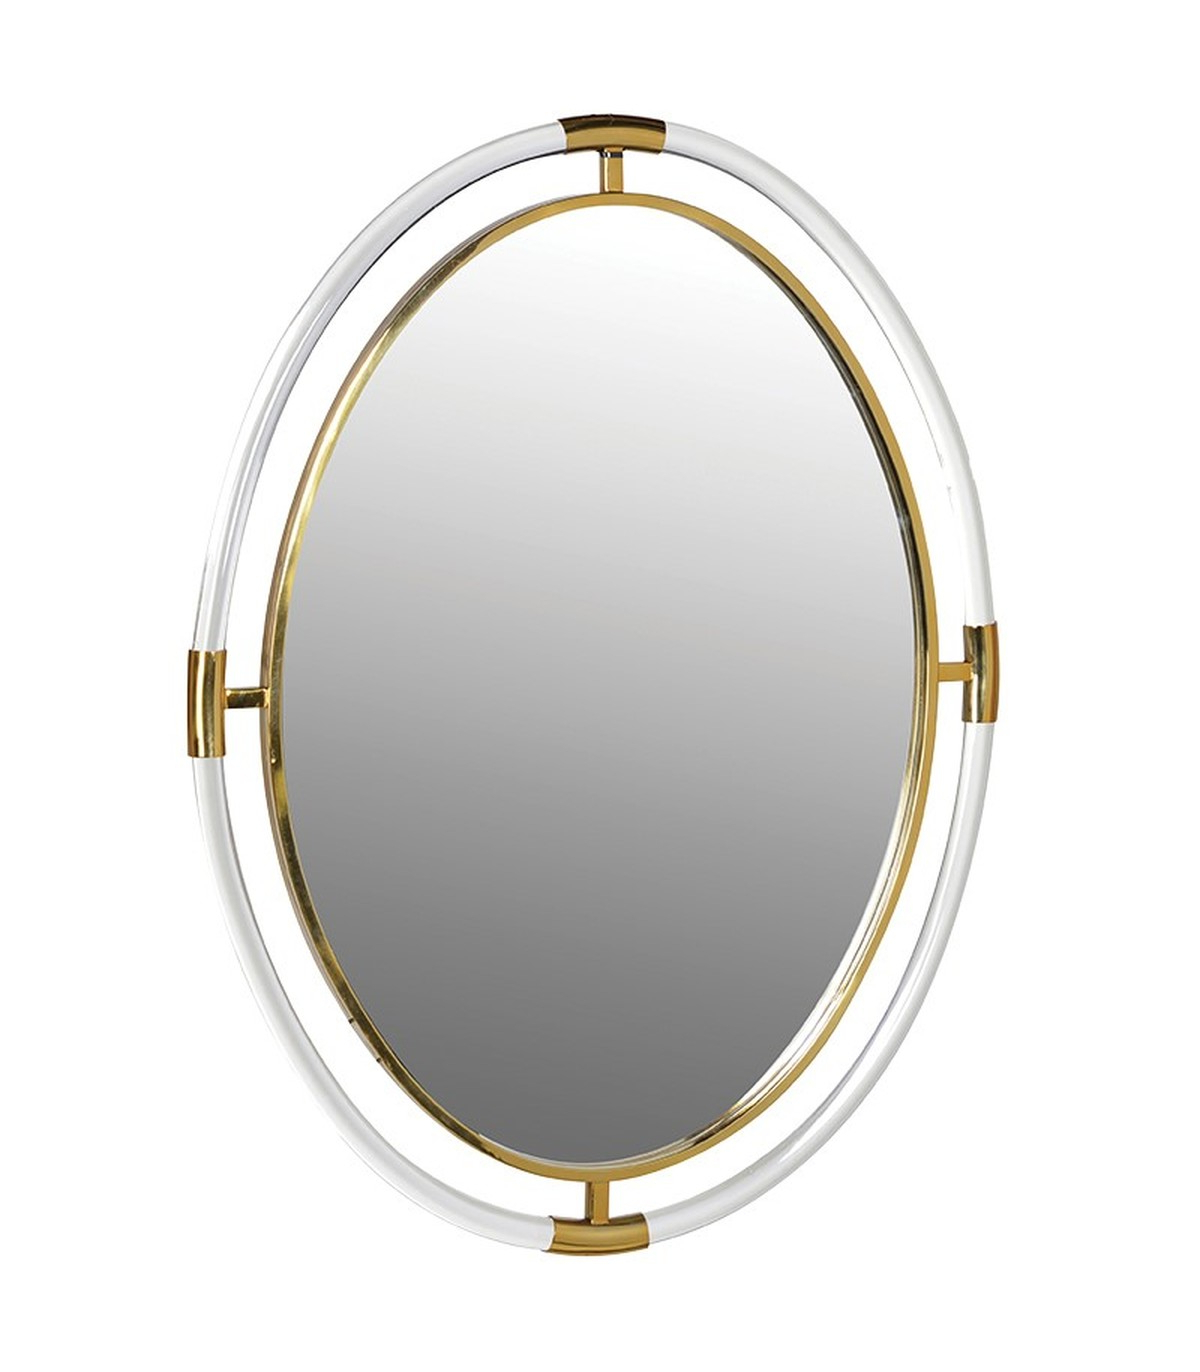 Acrylic Wall Mirrors Intended For Newest Acrylic And Gold Oval Wall Mirror (Gallery 8 of 20)